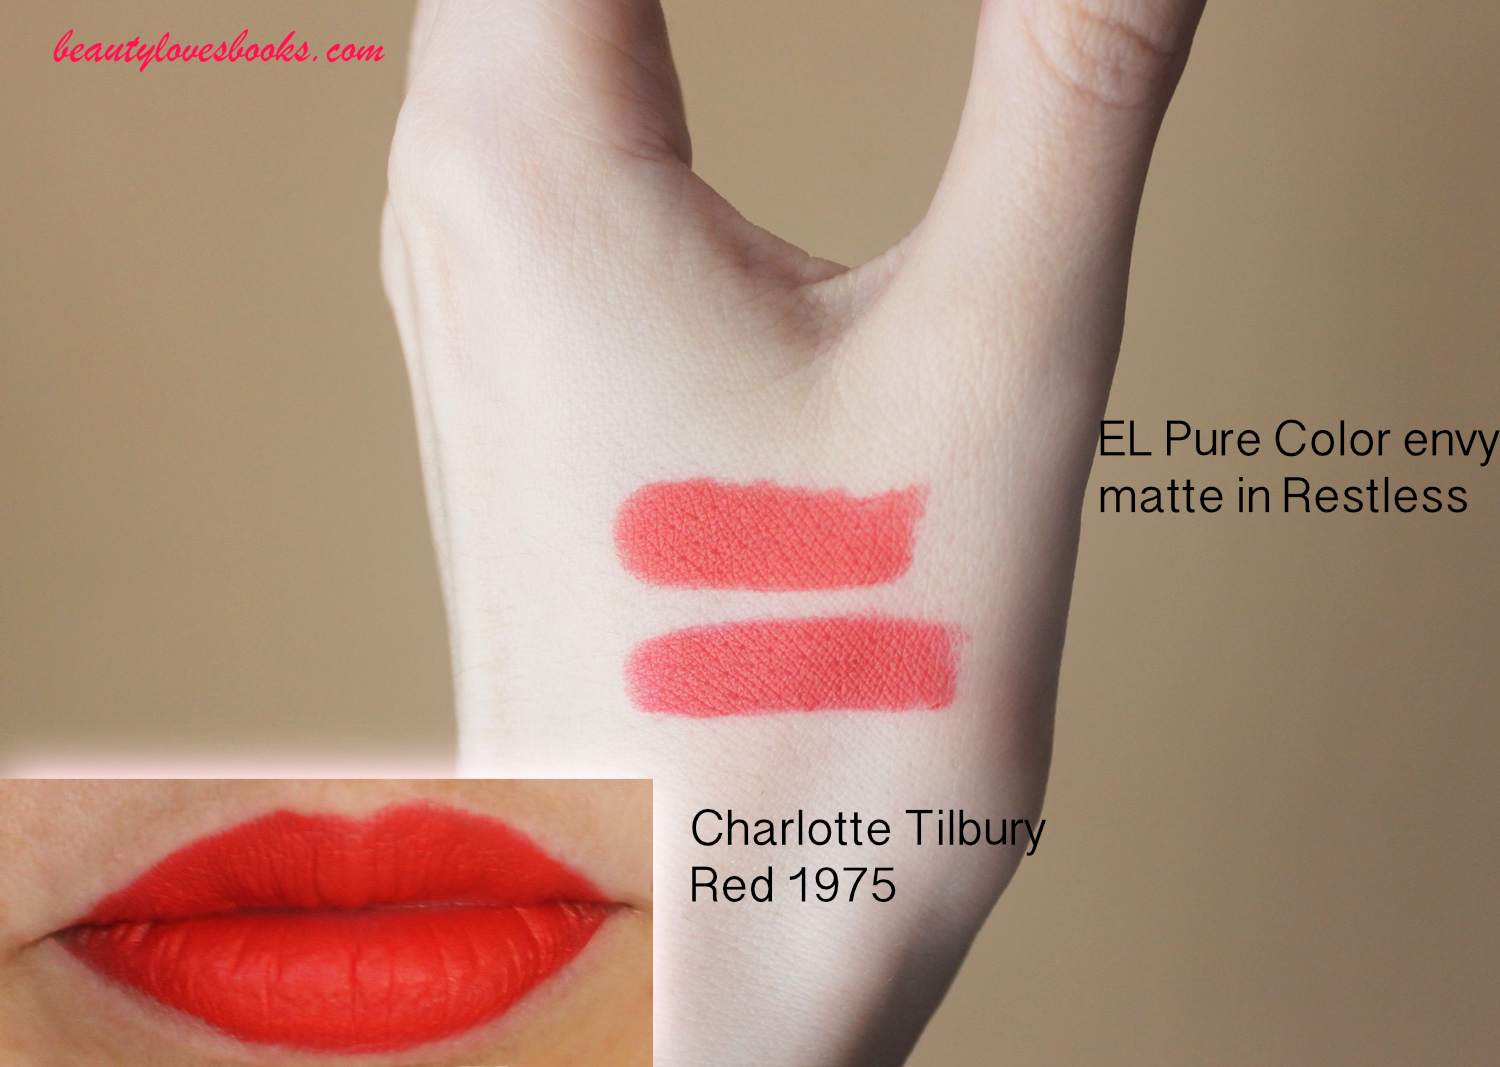 Charlotte Tilbury Matte revolution lipstick in the shade 1975 Red